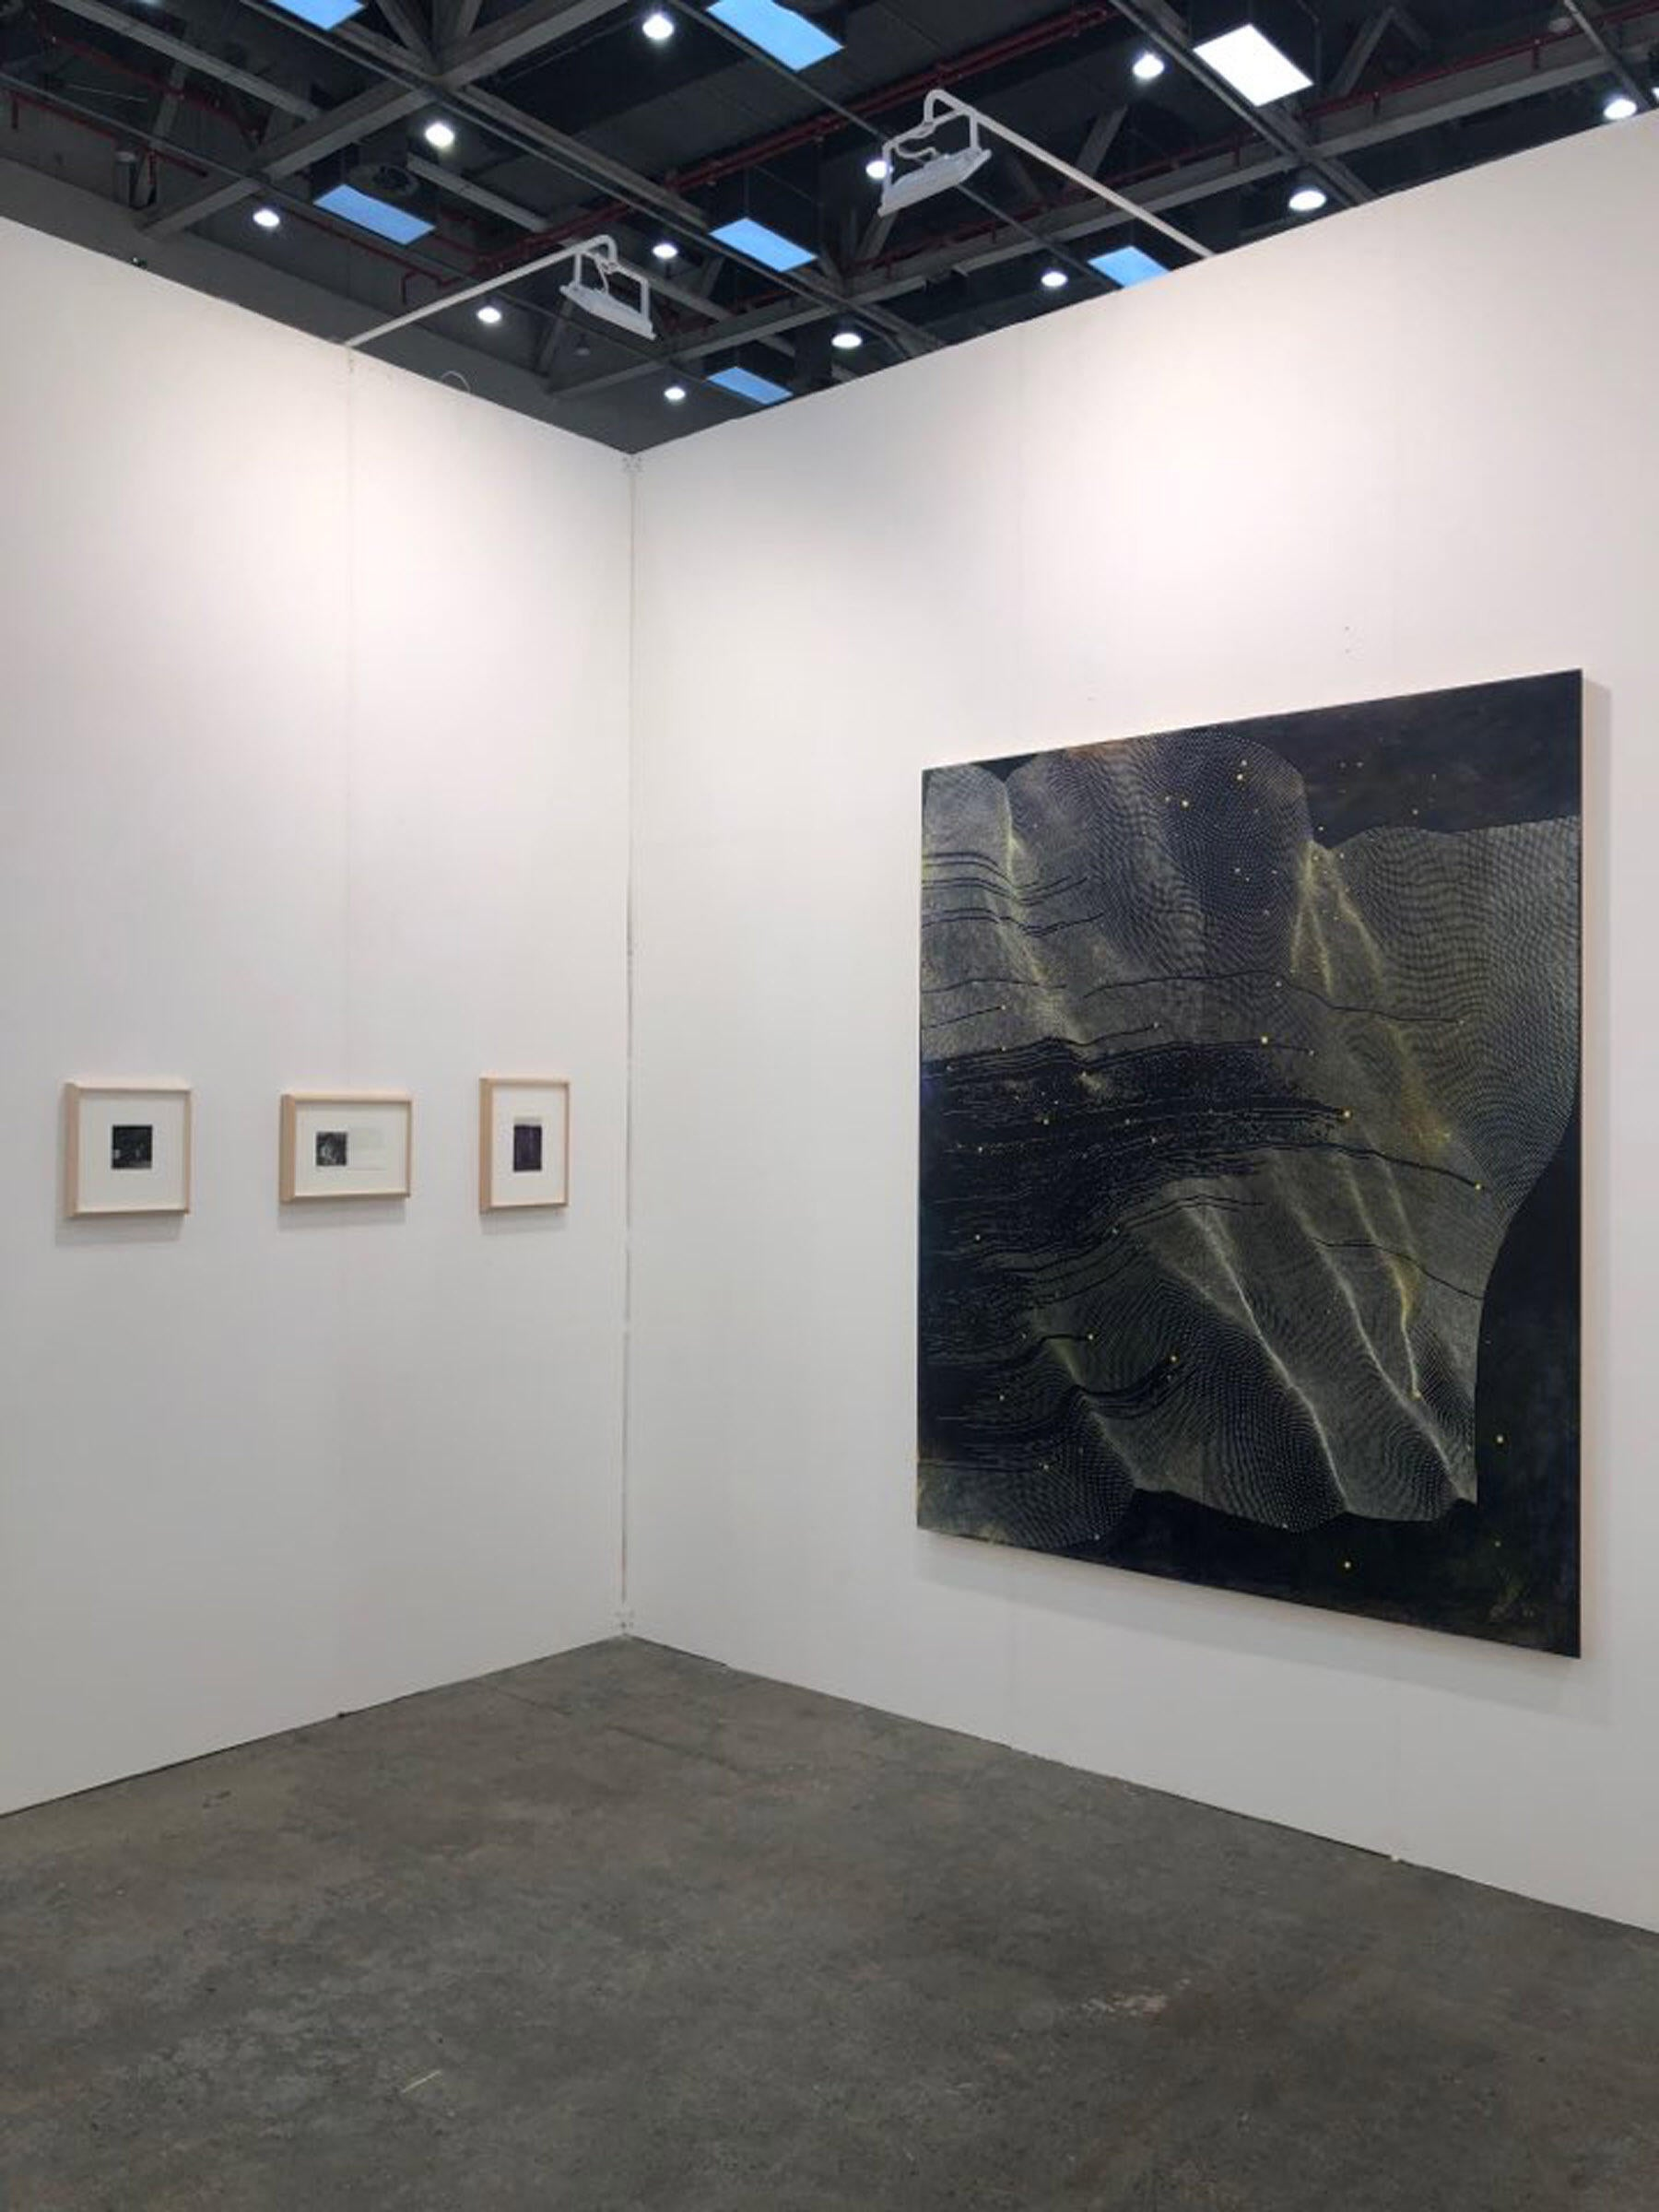 Installation of Drawings by Charles Ritchie and a Painting by Linn Meyers at Daegu Art Fair 2020 image